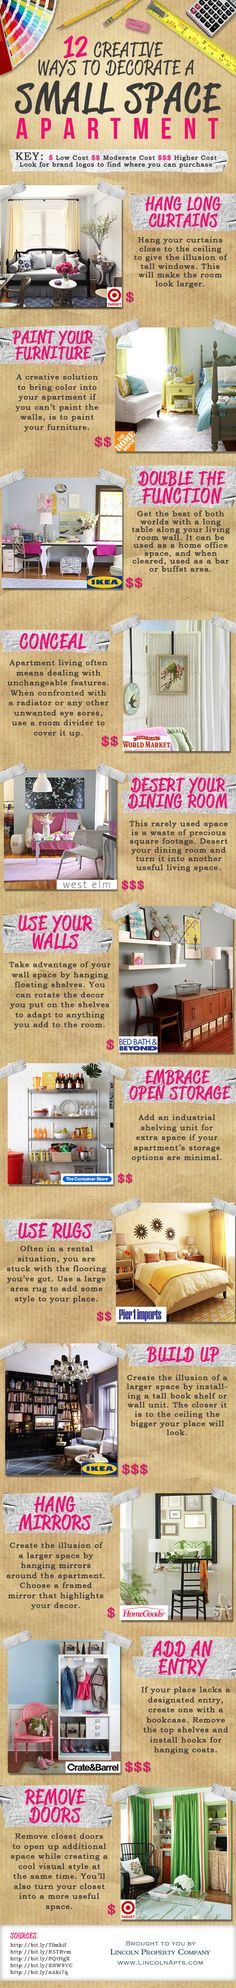 12 Creative Ways to Decorate a Small Space